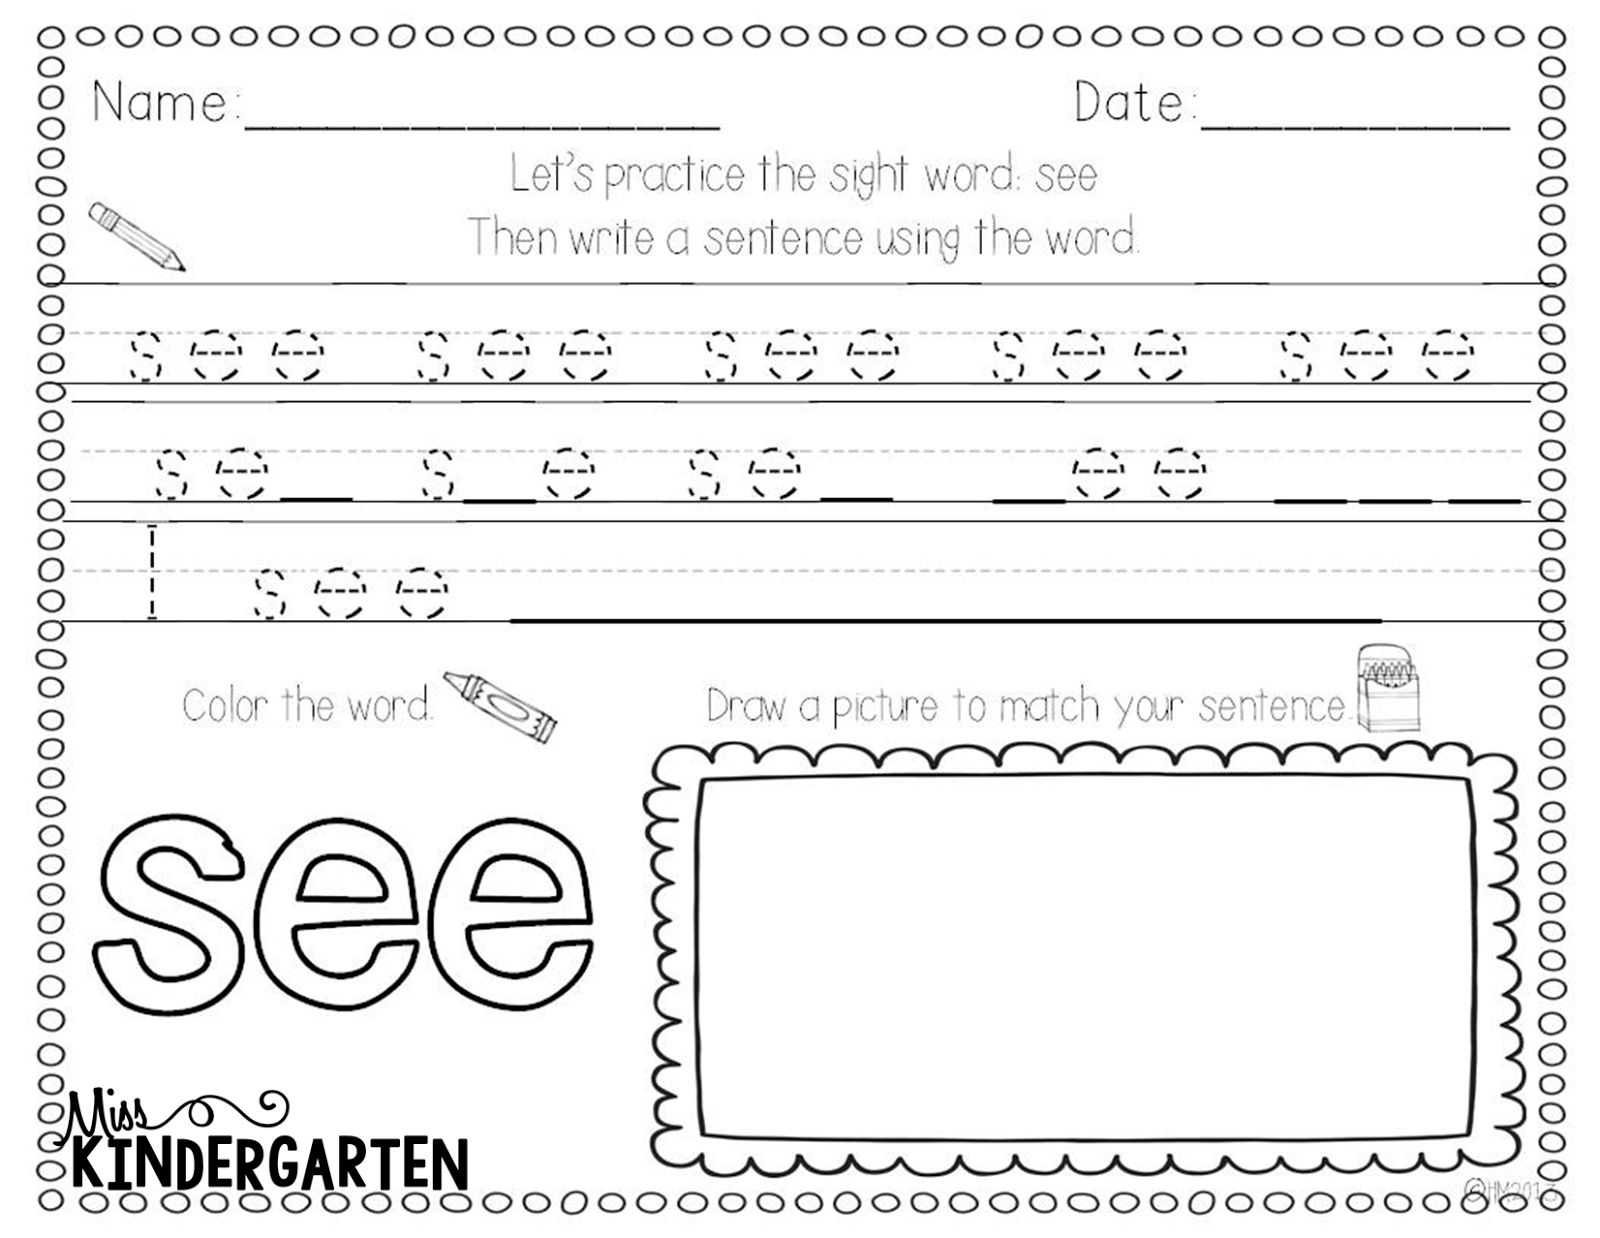 Worksheet Sight Word Worksheets Kindergarten Free sight word practice miss kindergarten httpwww teacherspayteachers comproductsight word